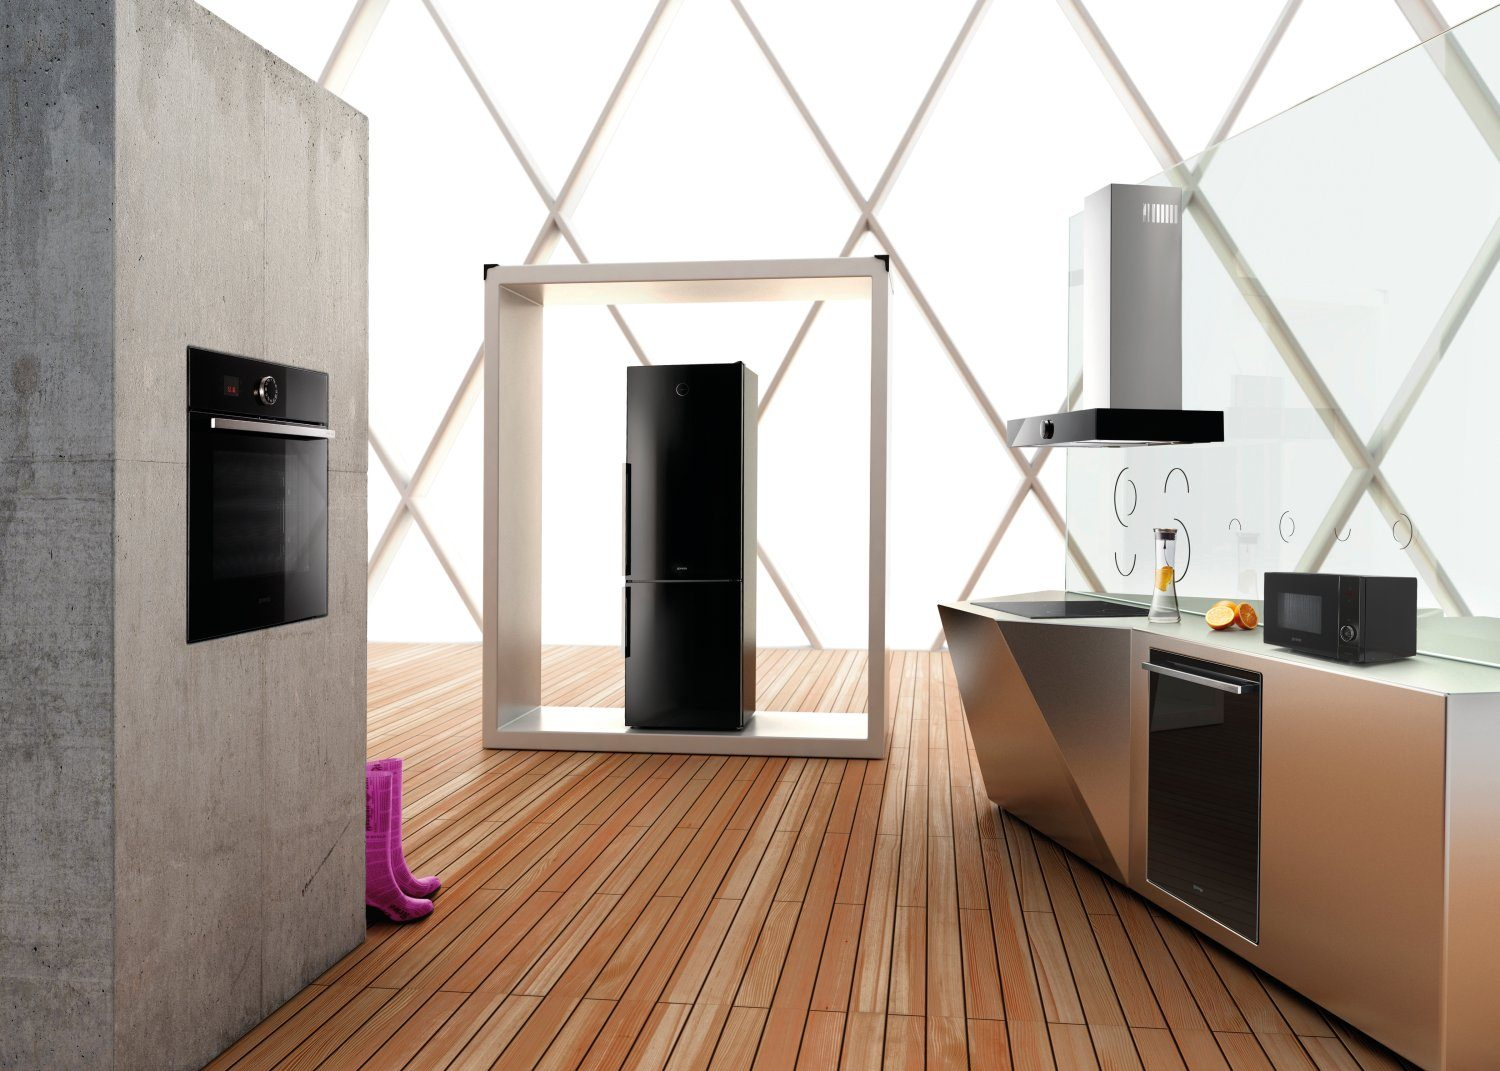 gorenje launches new simplicity collection gorenje. Black Bedroom Furniture Sets. Home Design Ideas